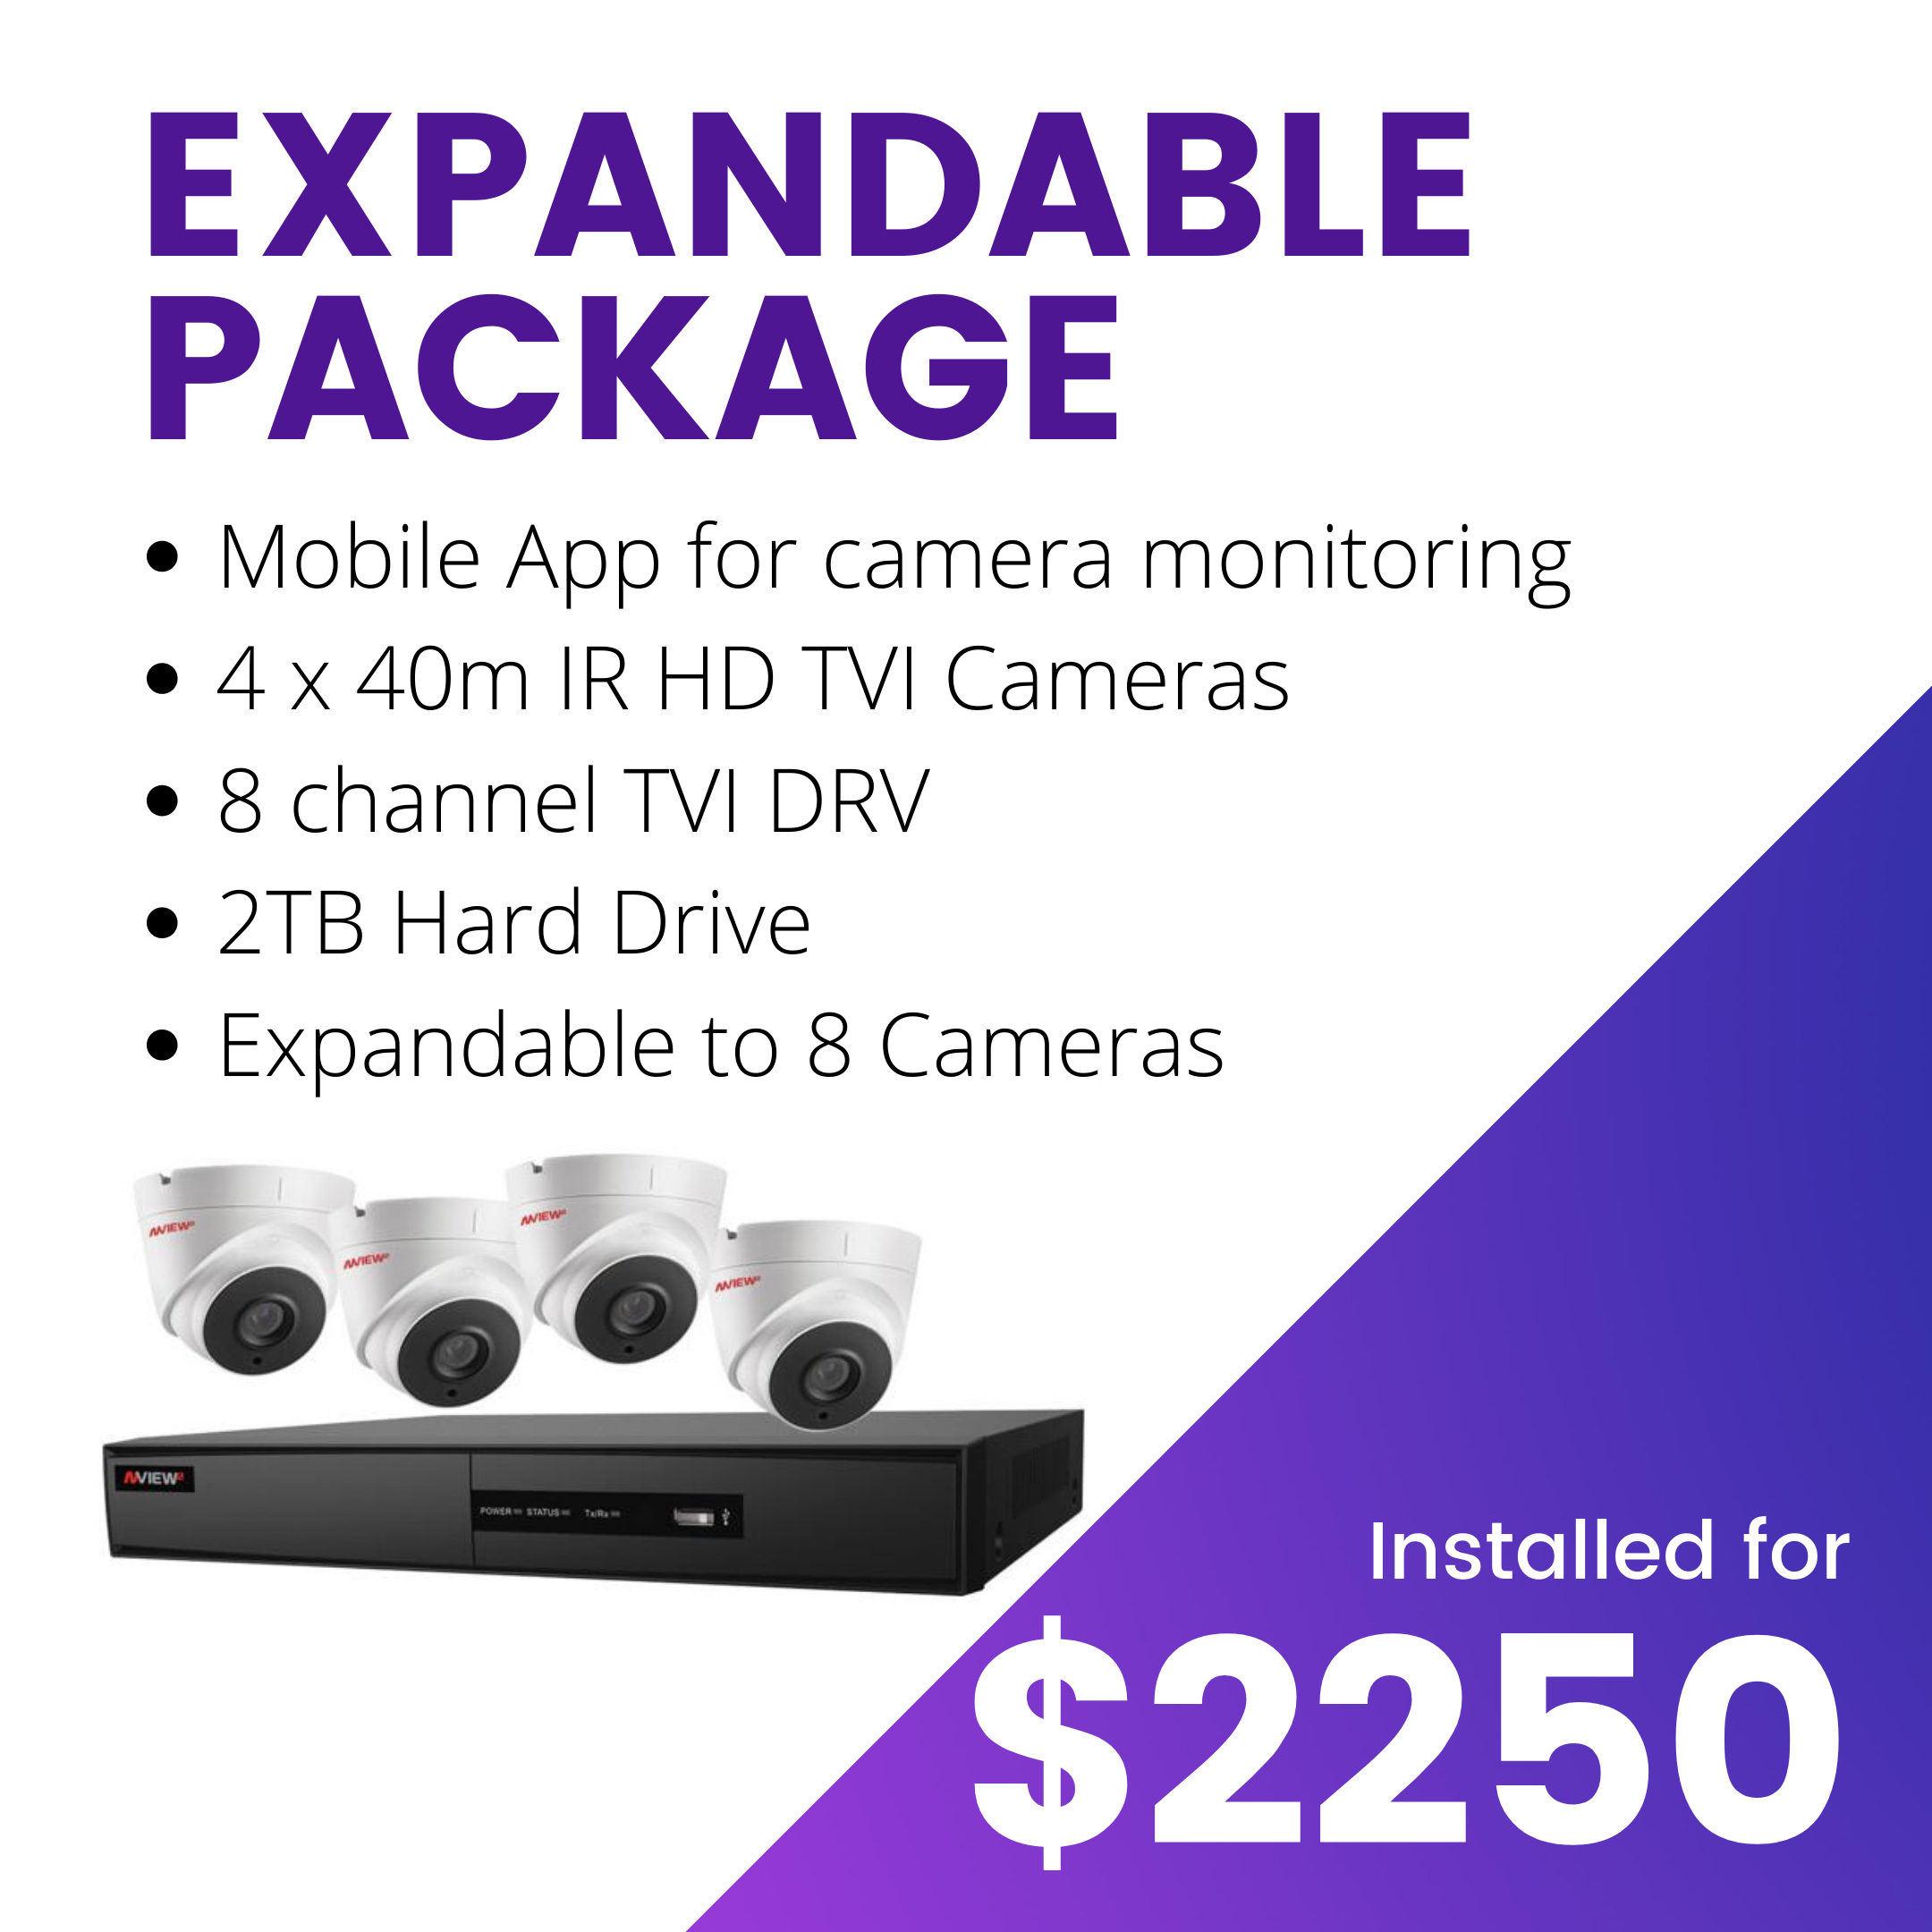 Ryve Expandable Camera Package